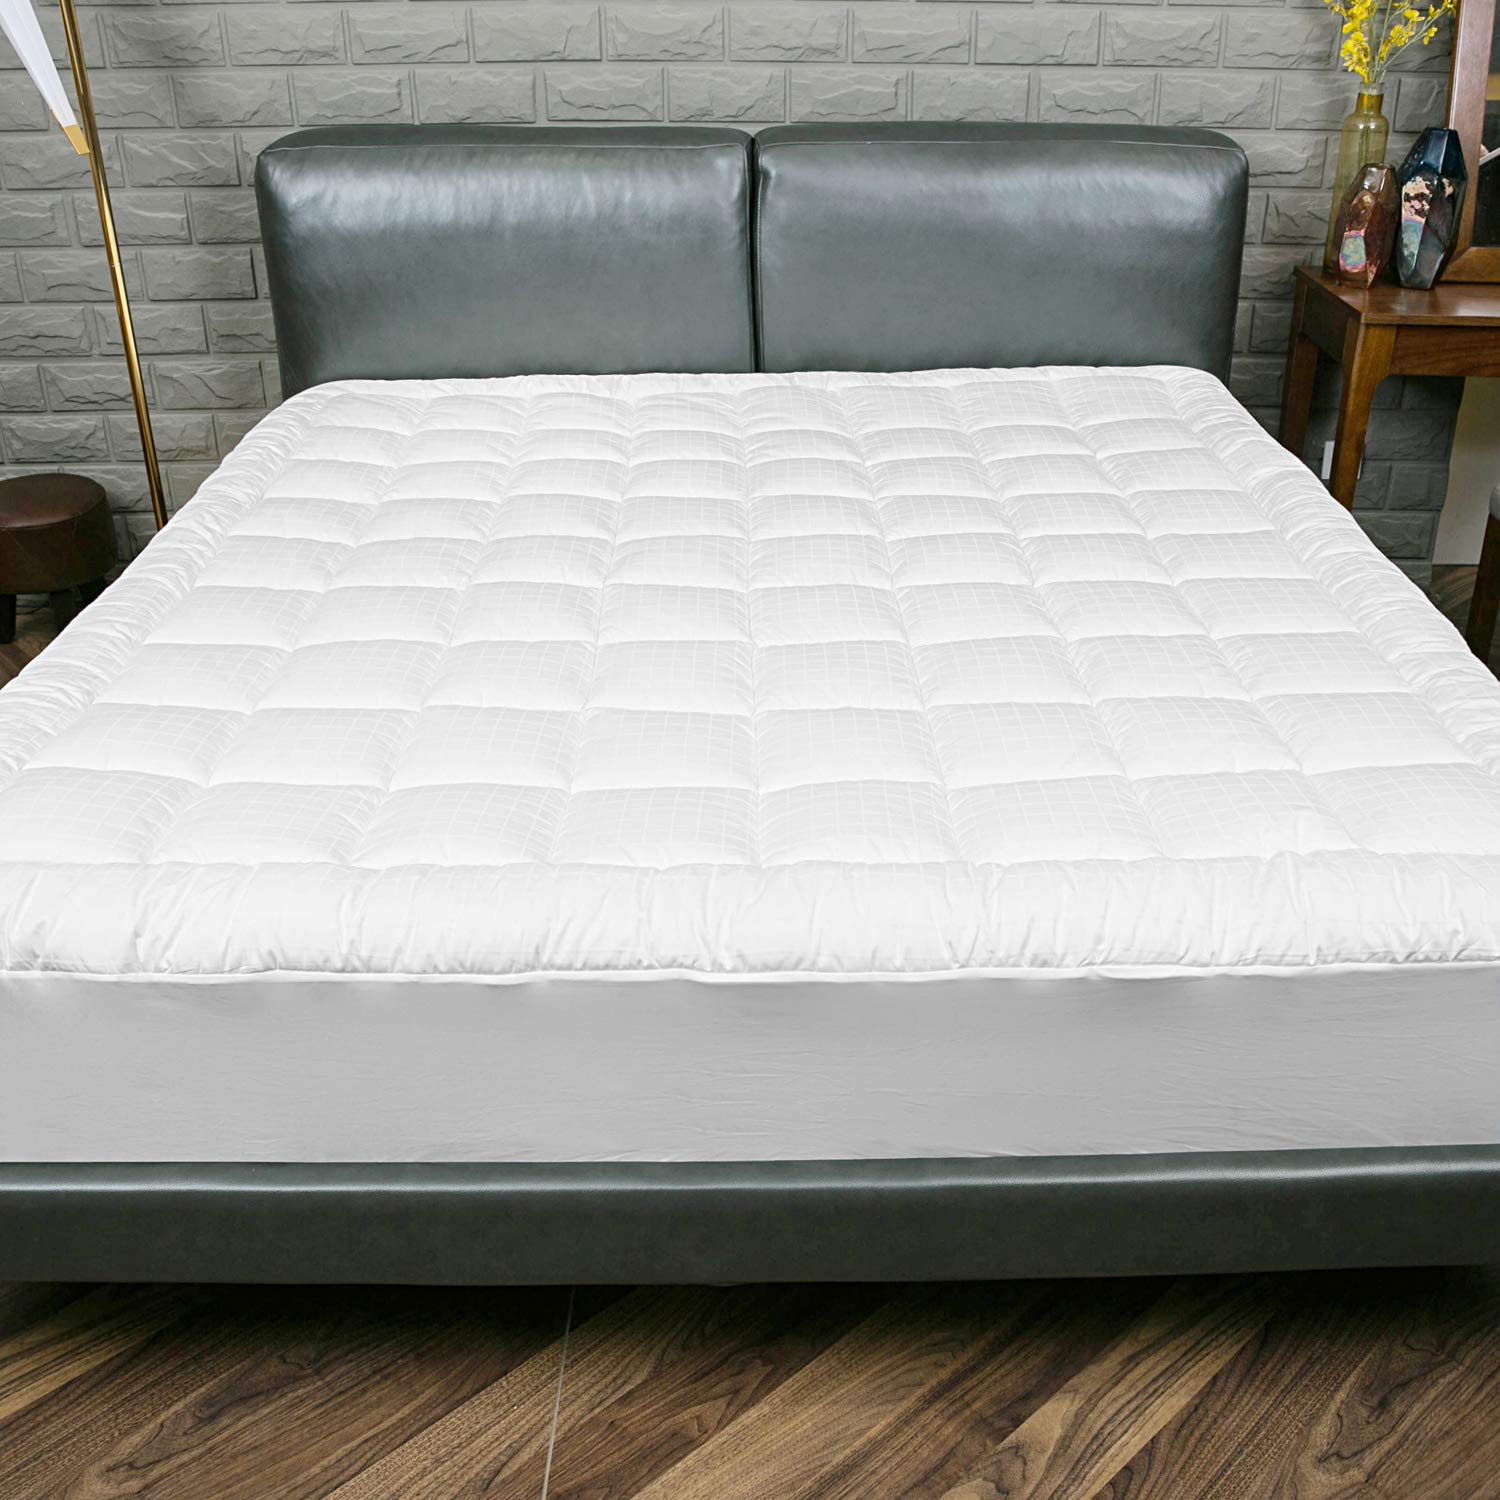 Di Hua Mattress Pad Cover Twin XL Size Soft Quilted Super Quality 800 GSM 100% Cotton 300TC Luxury Bed Topper Cooling Hypoallergenic Antibacterial Breathable Fitted Protector Deep 8''-23'' White